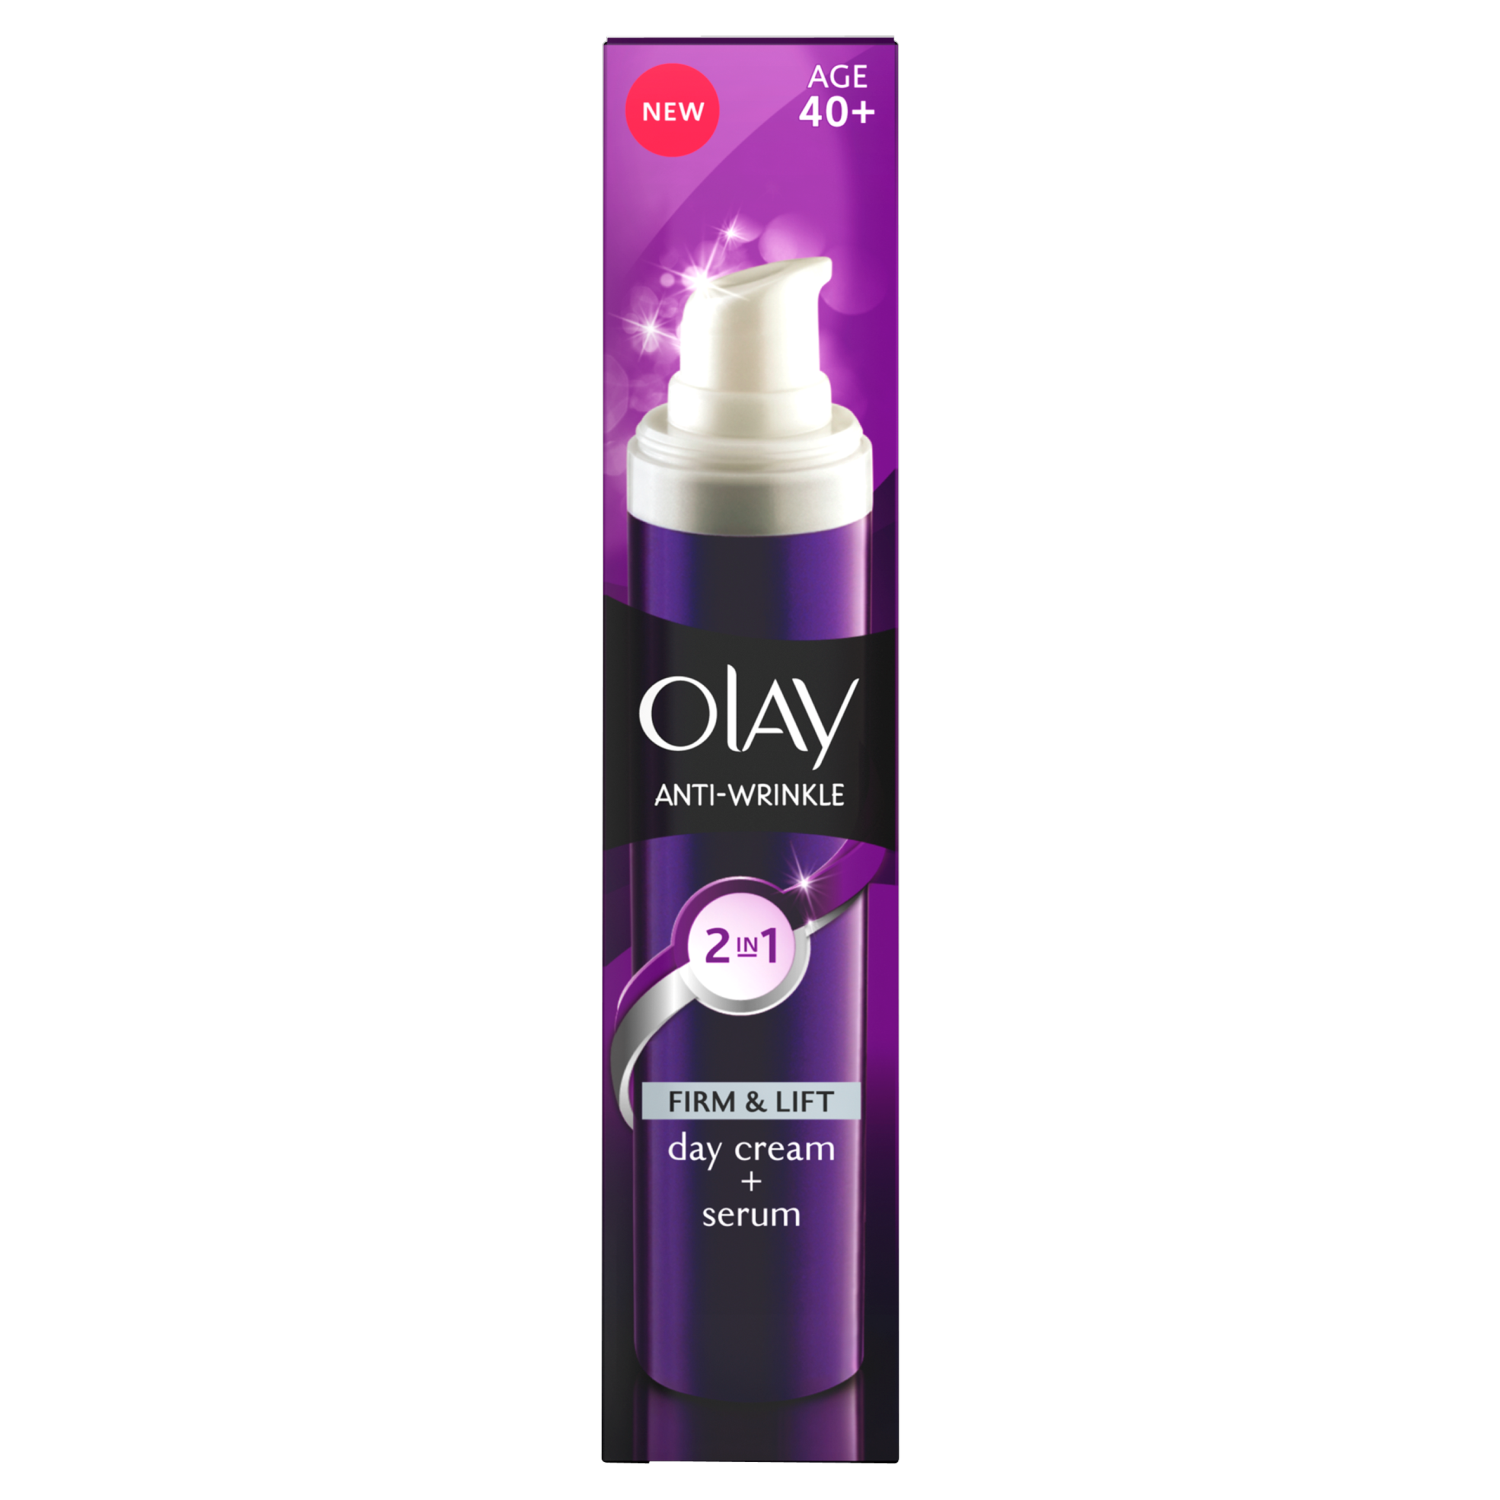 Olay Anti-wrinkle Firm & Lift 2 in 1 Day Cream & Serum